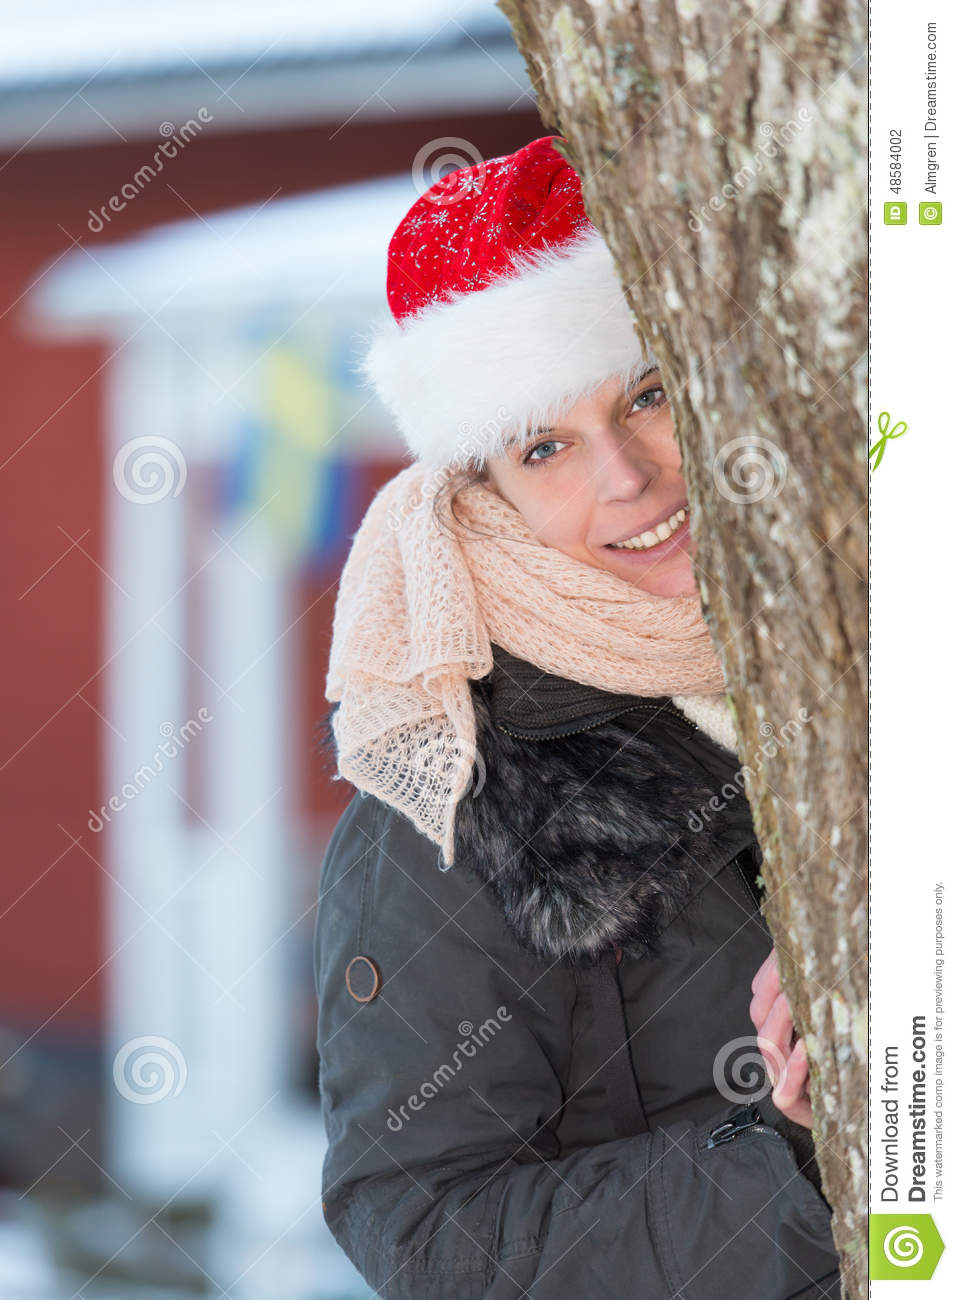 12268fbf9a Attractive happy woman with santa claus hat looking from behind a tree i  front of a typical red wooden house in Sweden.